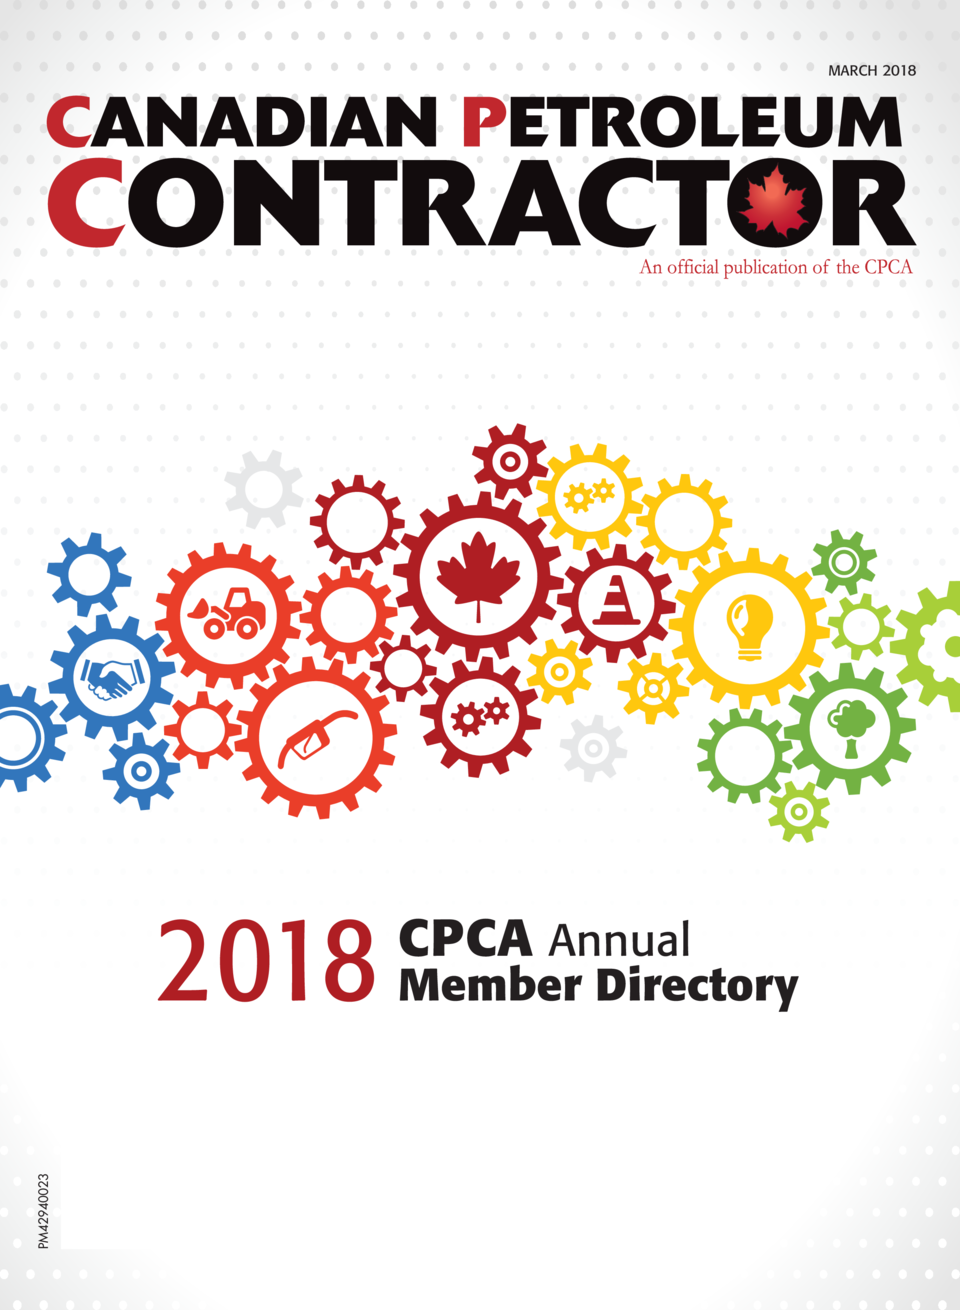 MARCH 2018  PM42940023  2018  CPCA Annual  Member Directory